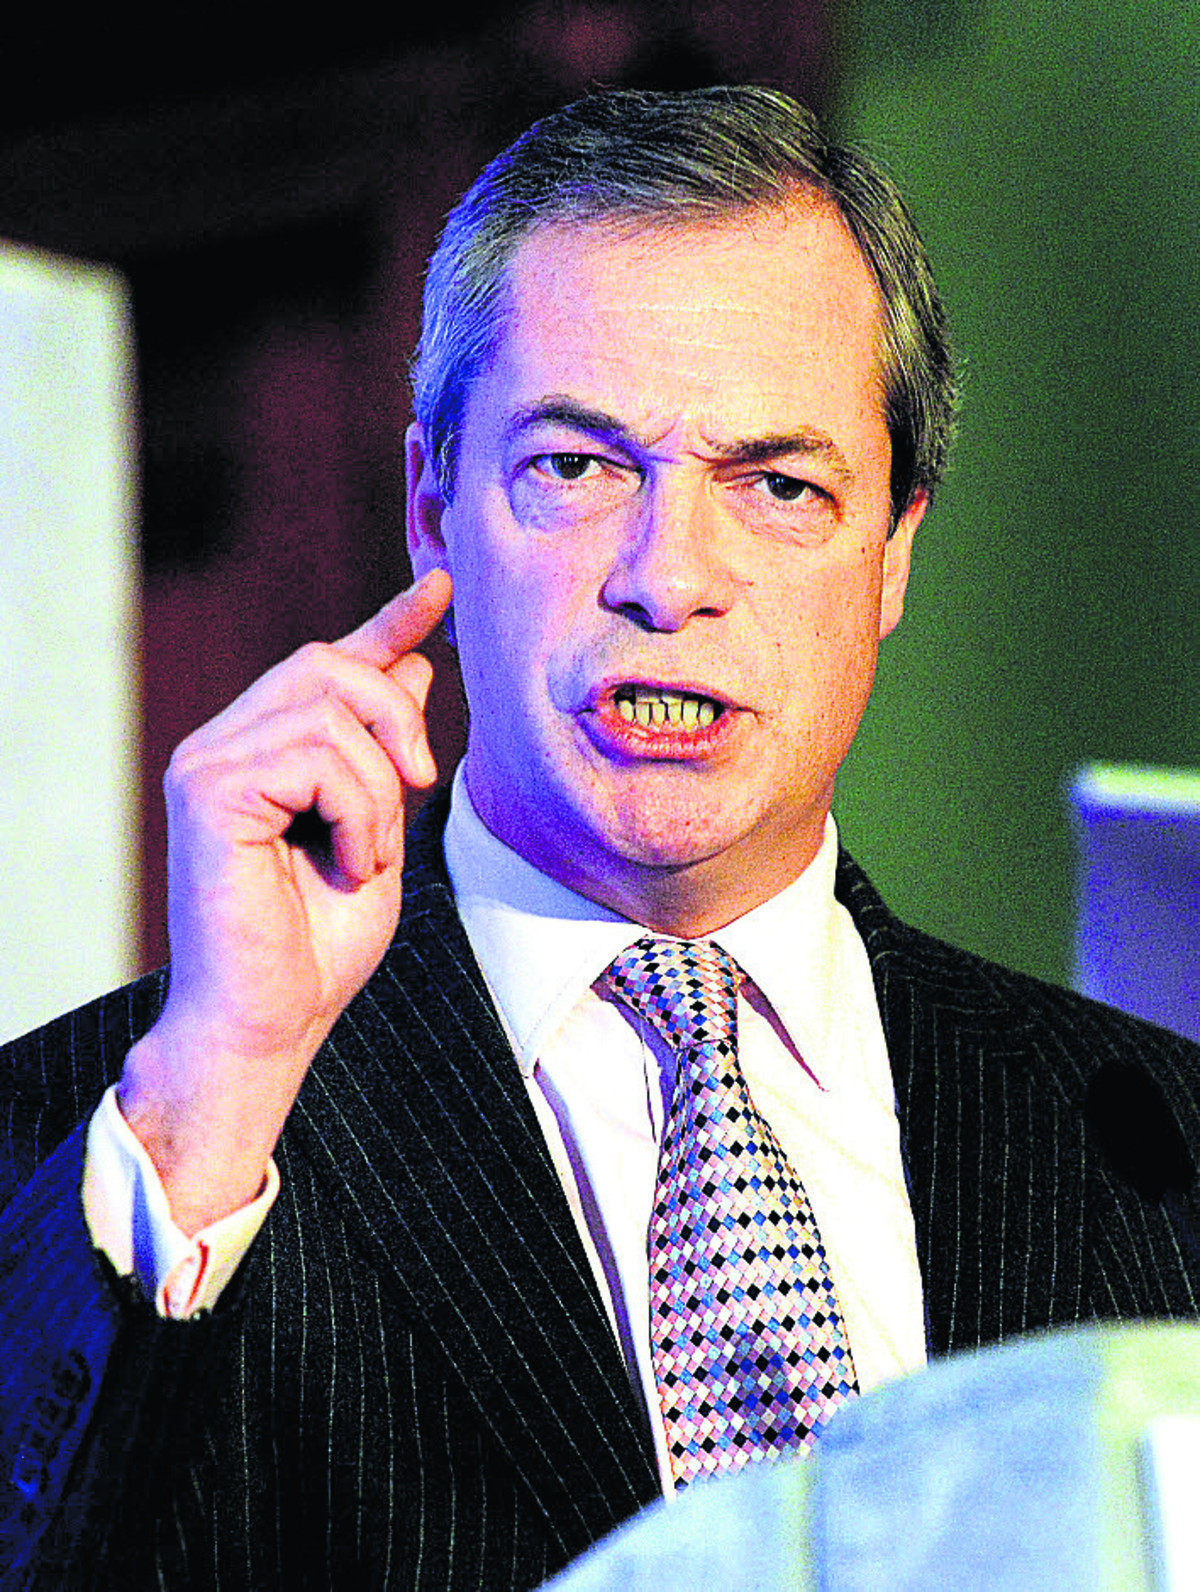 Dartford and Gravesham residents can vote for Nigel Farage on May 22.